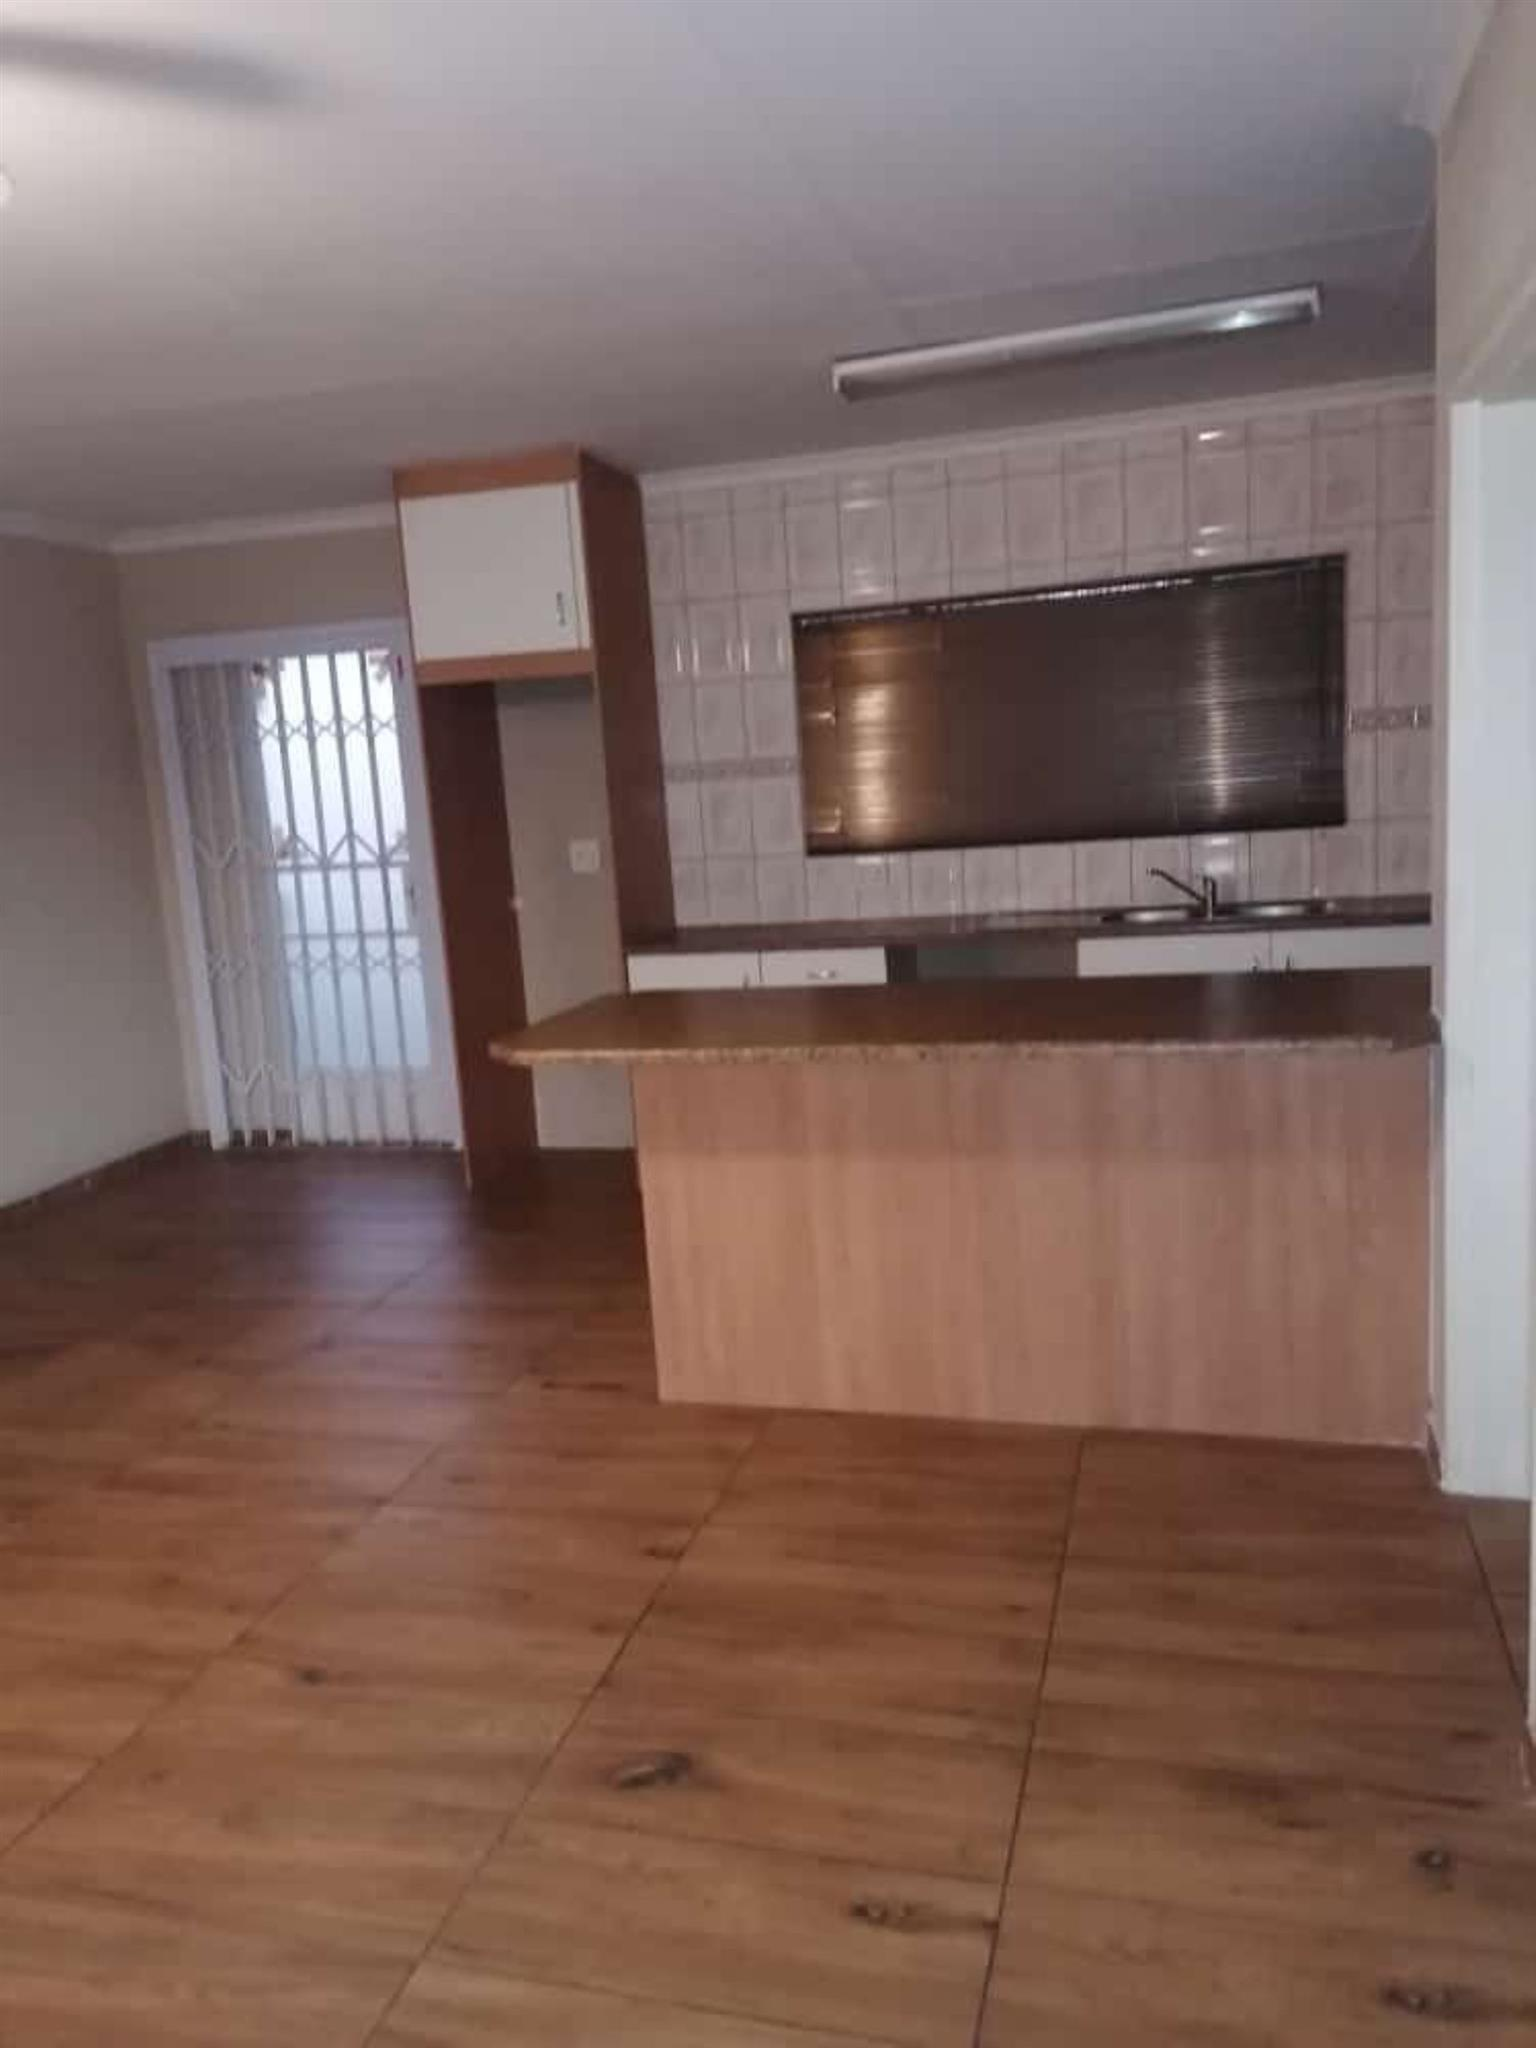 House Rental Monthly in KEMPTON PARK